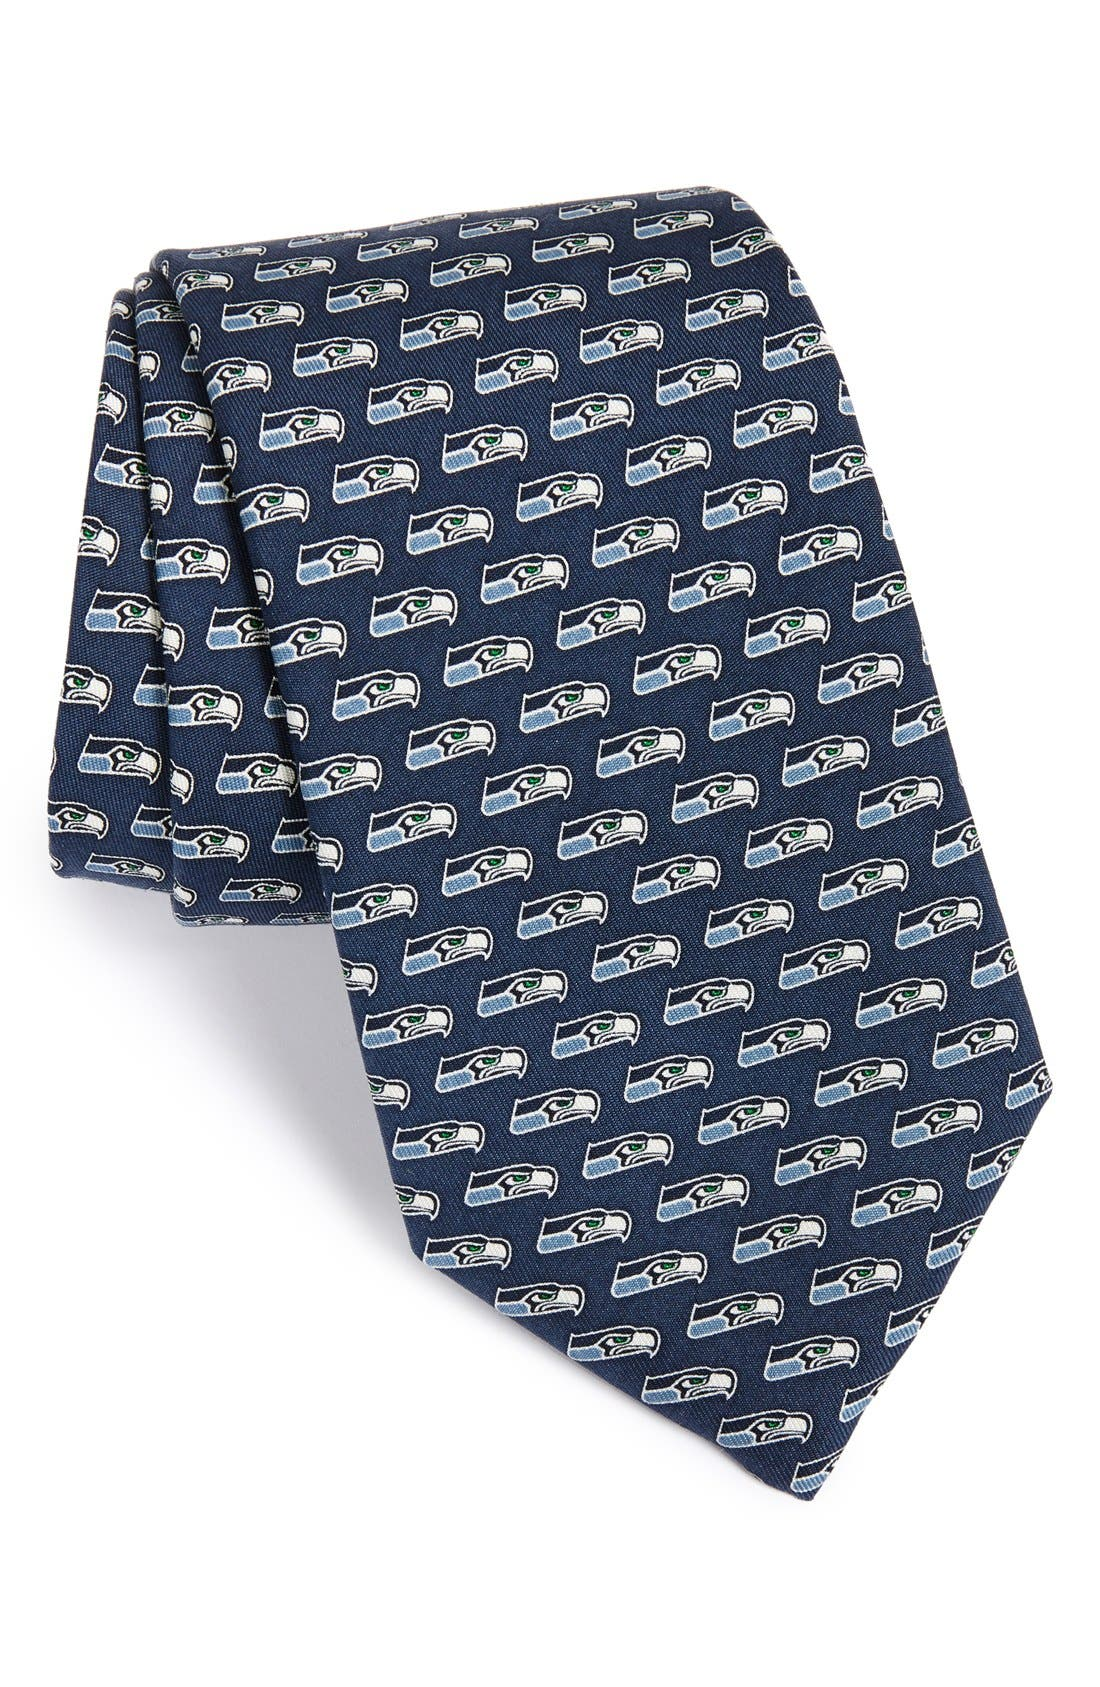 Seattle Seahawks - NFL Woven Silk Tie,                         Main,                         color, 414